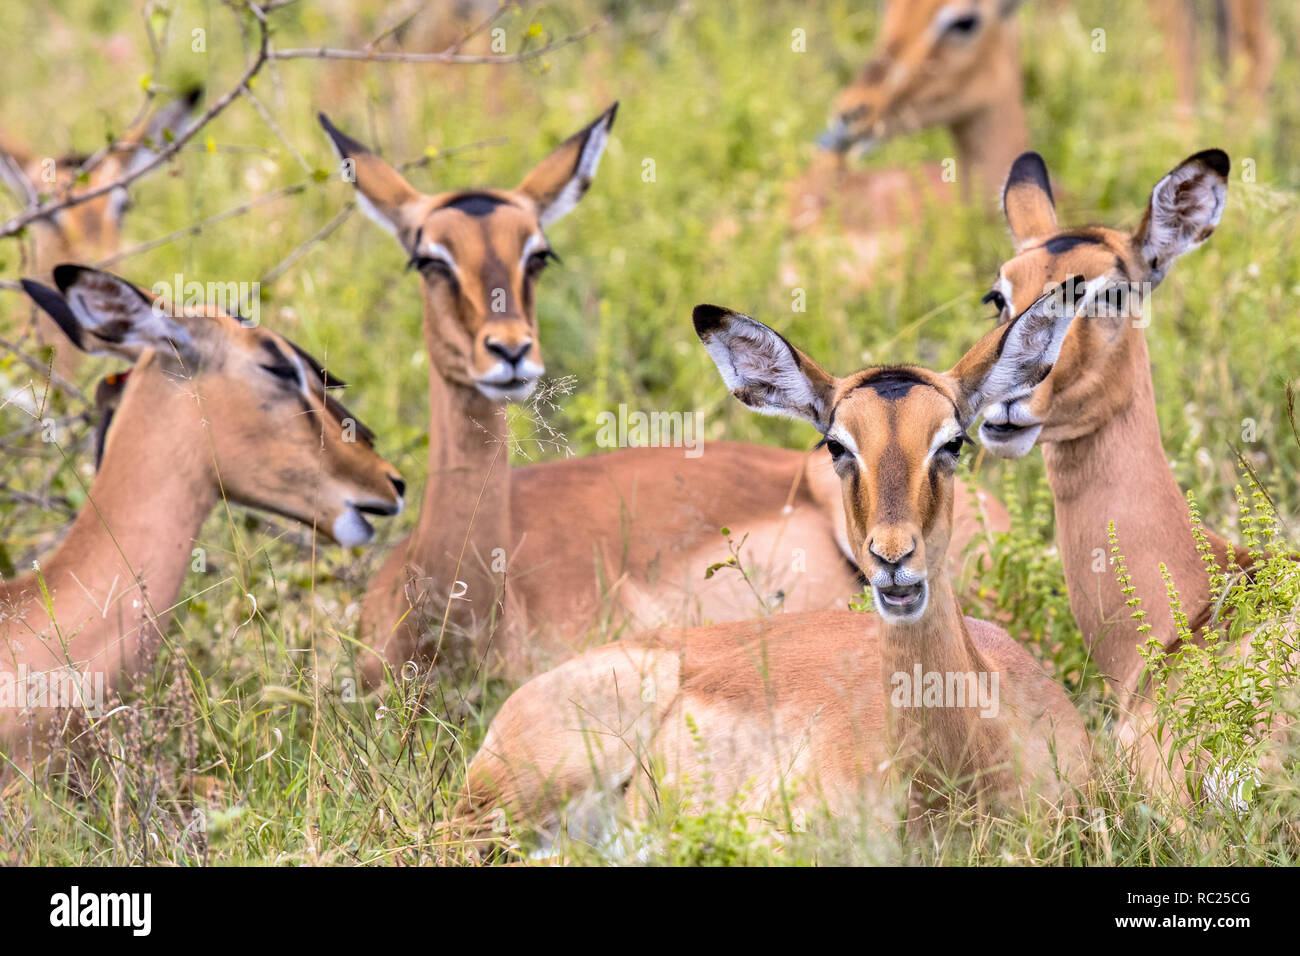 Impala (Aepyceros melampus) female group resting and ruminating in long green savanna grass in Kruger National park, South Africa - Stock Image